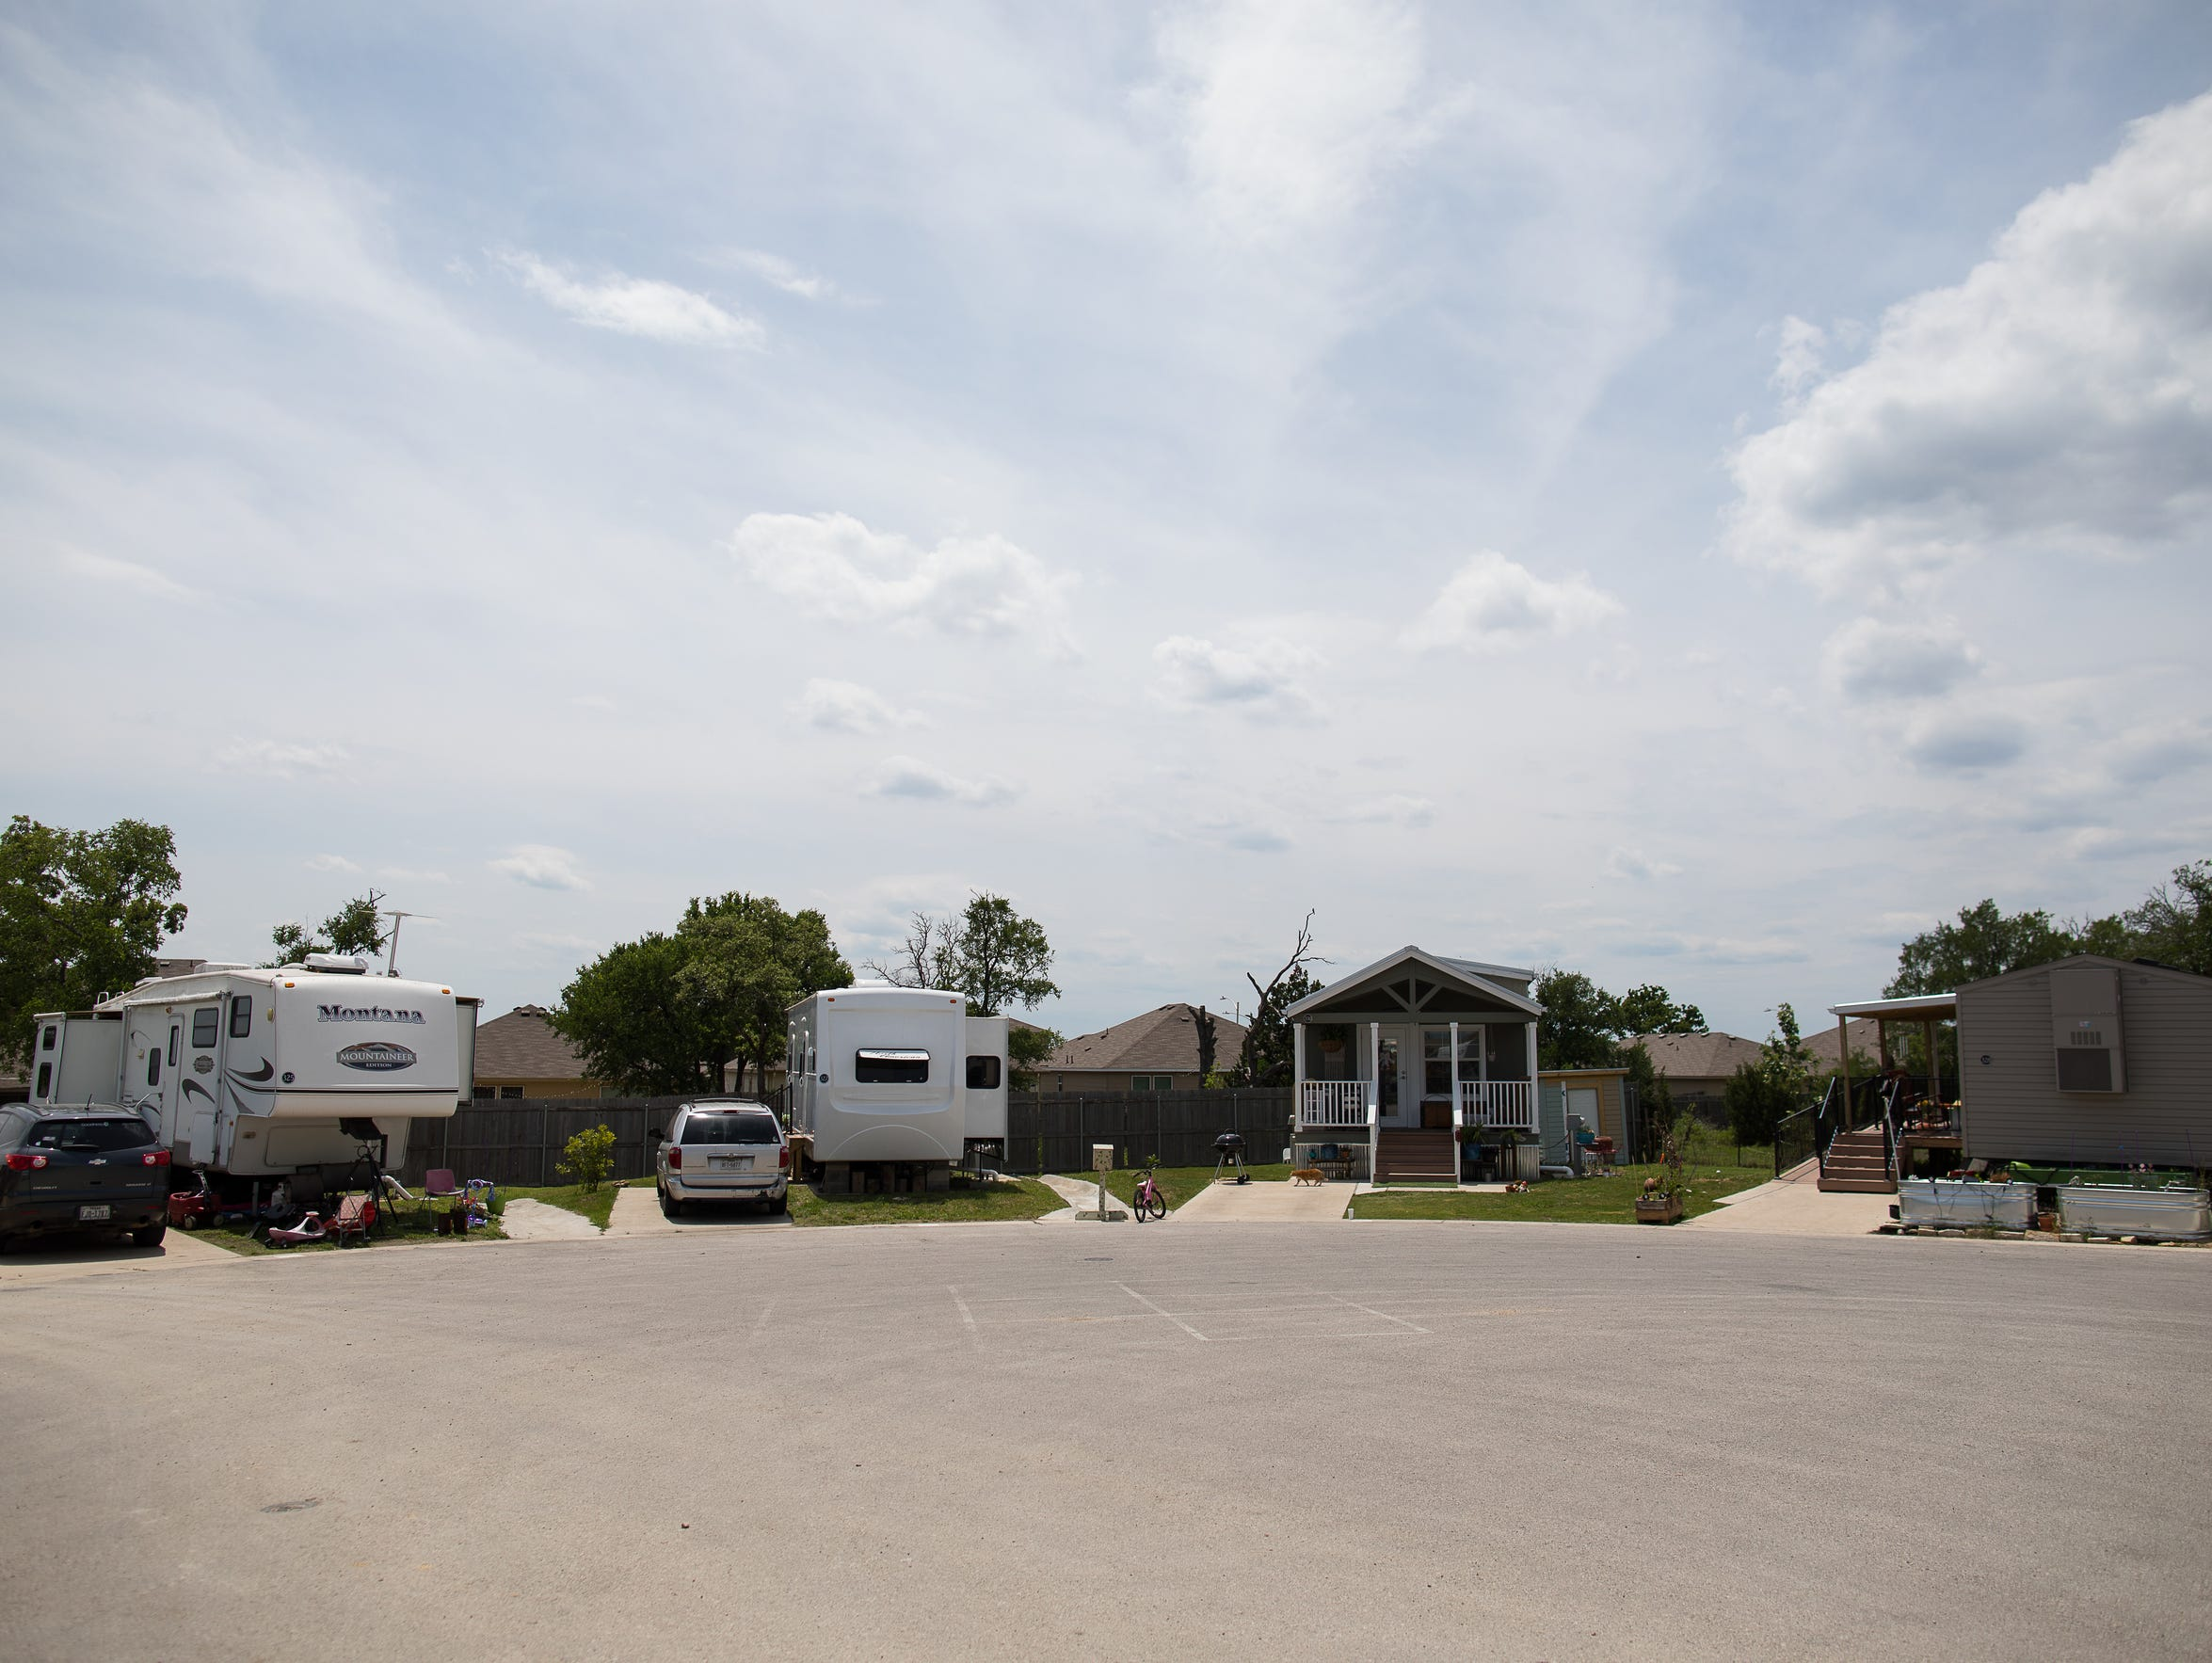 Homes and RV's parked at the end of street in the Community